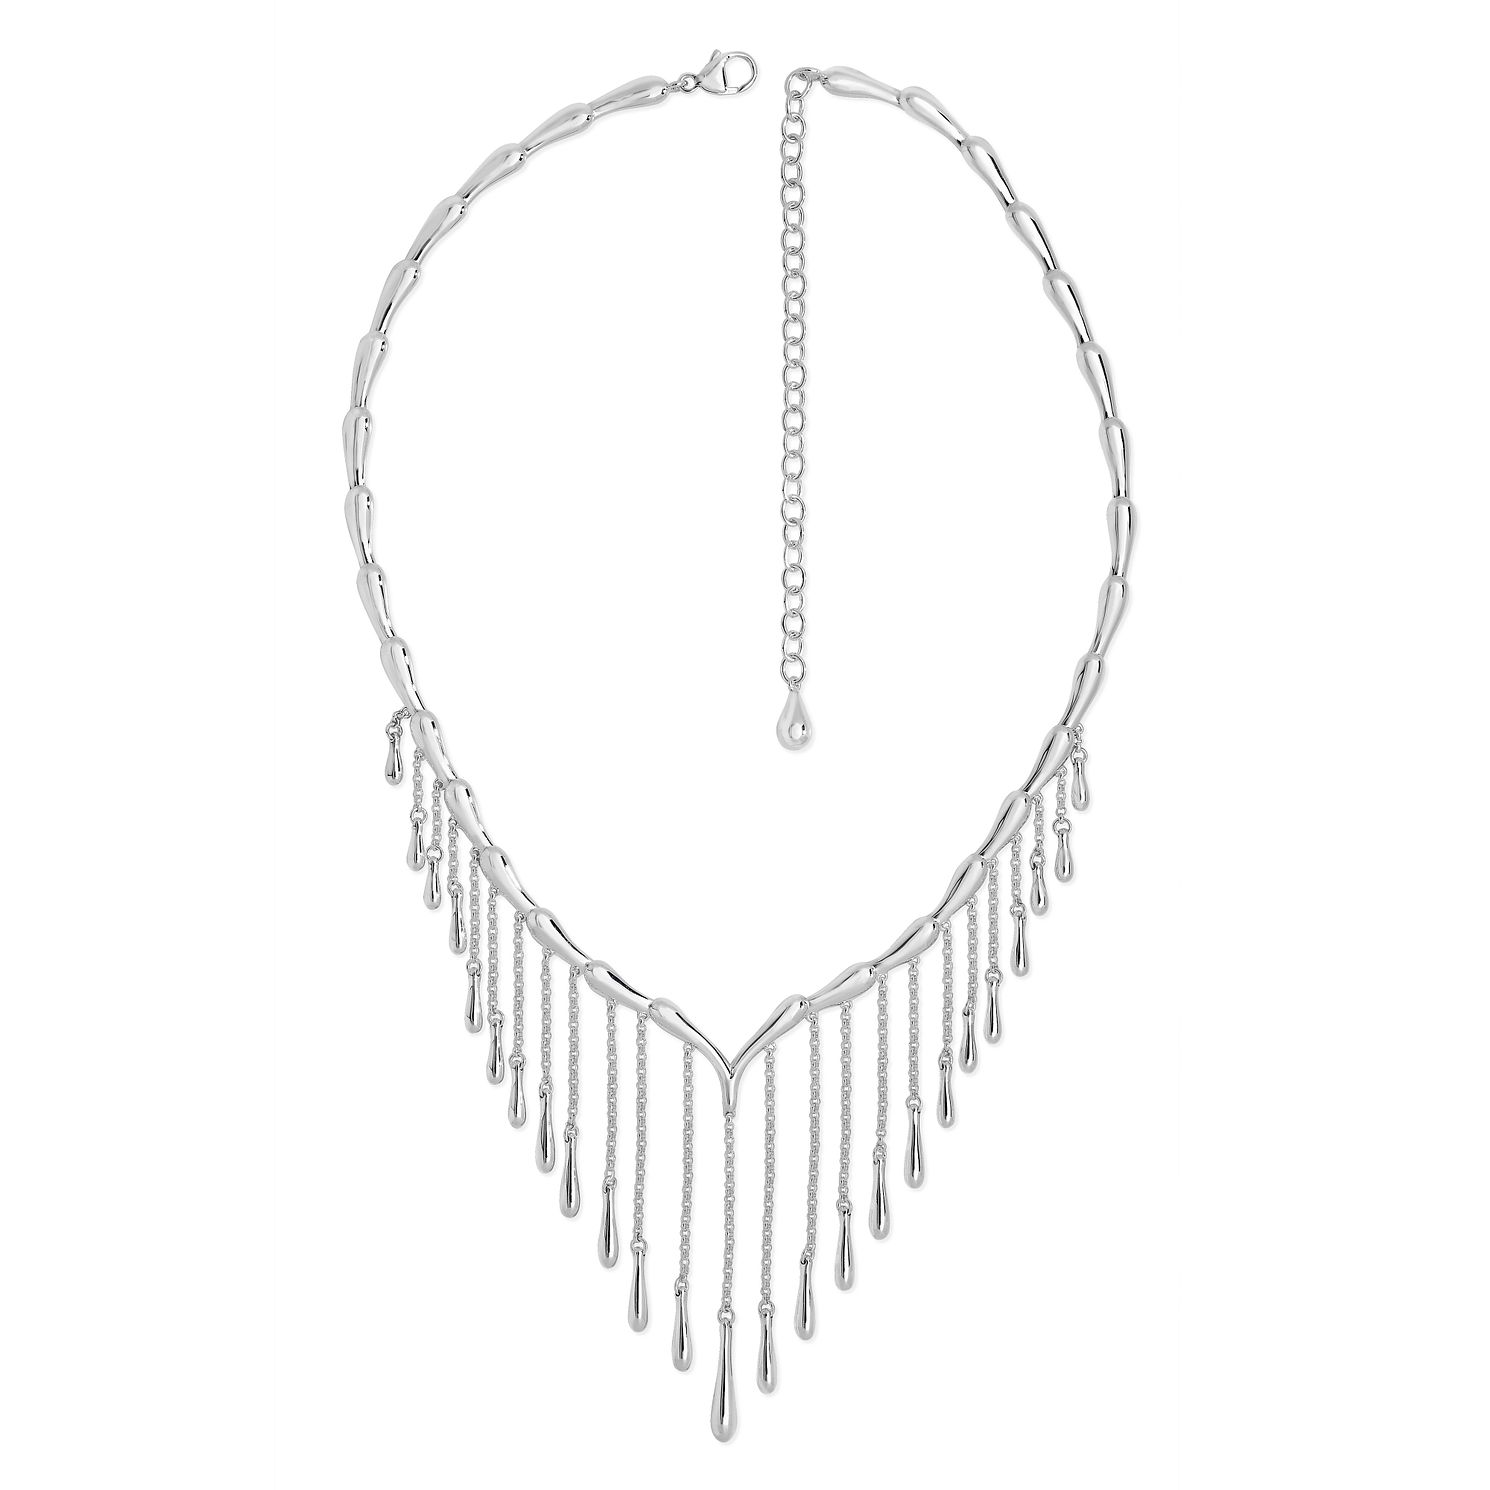 Lucy Quartermaine Silver 925 Waterfall Necklace - Product number 1376365